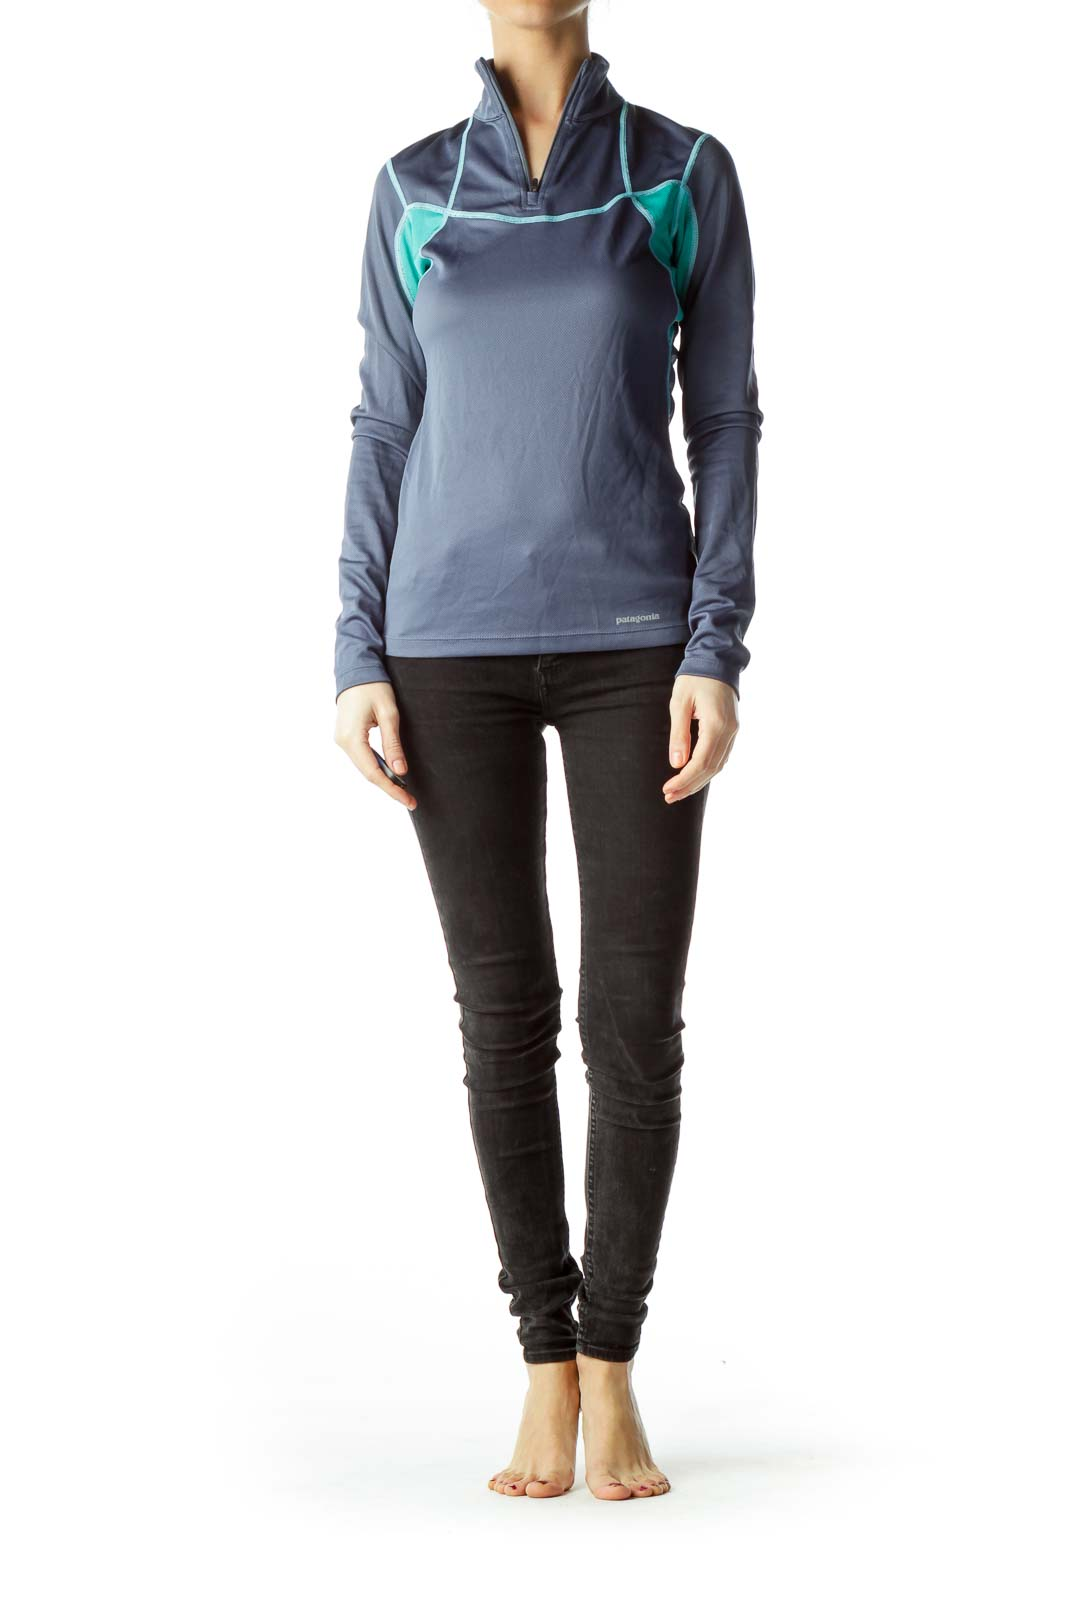 Blue Green Zippered Pullover Top